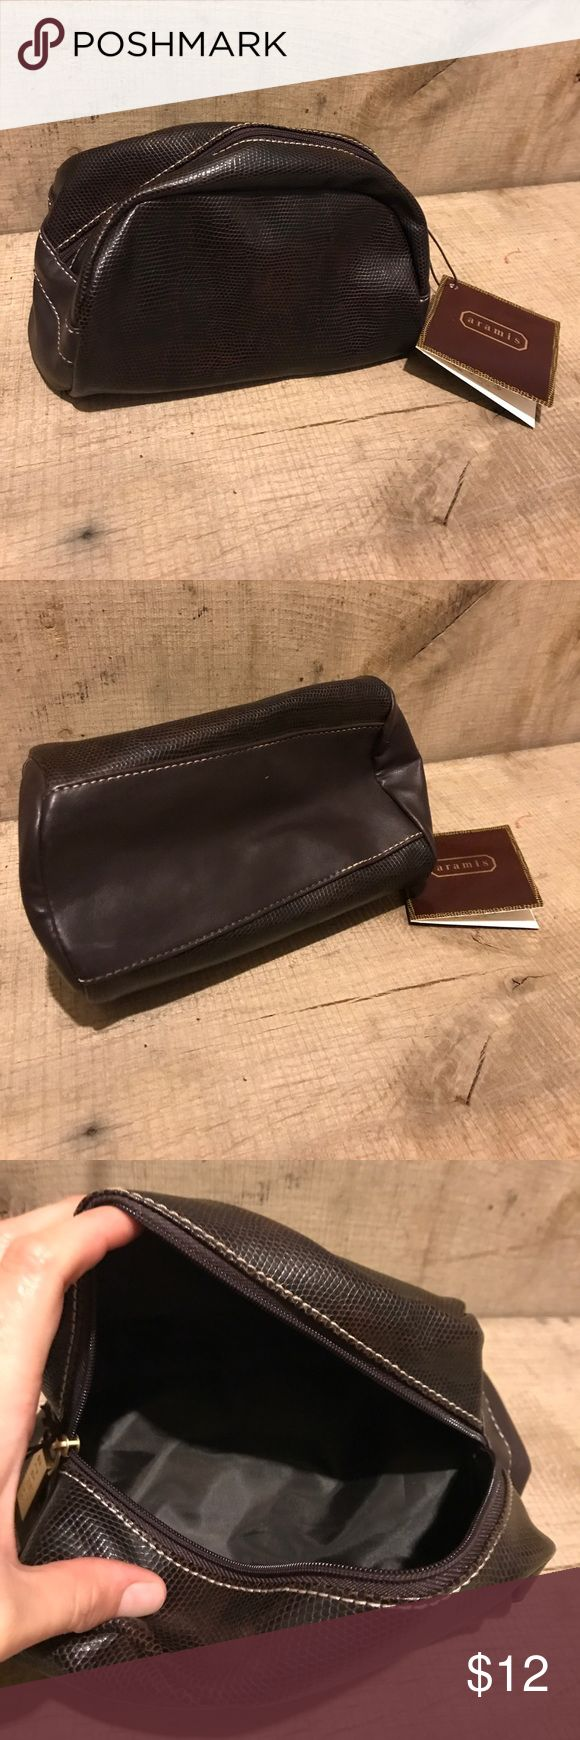 Aramis cosmetic bag Aramis cosmetic bag-New/no flaws/perfect for traveling-any questions just ask! aramis Bags Cosmetic Bags & Cases